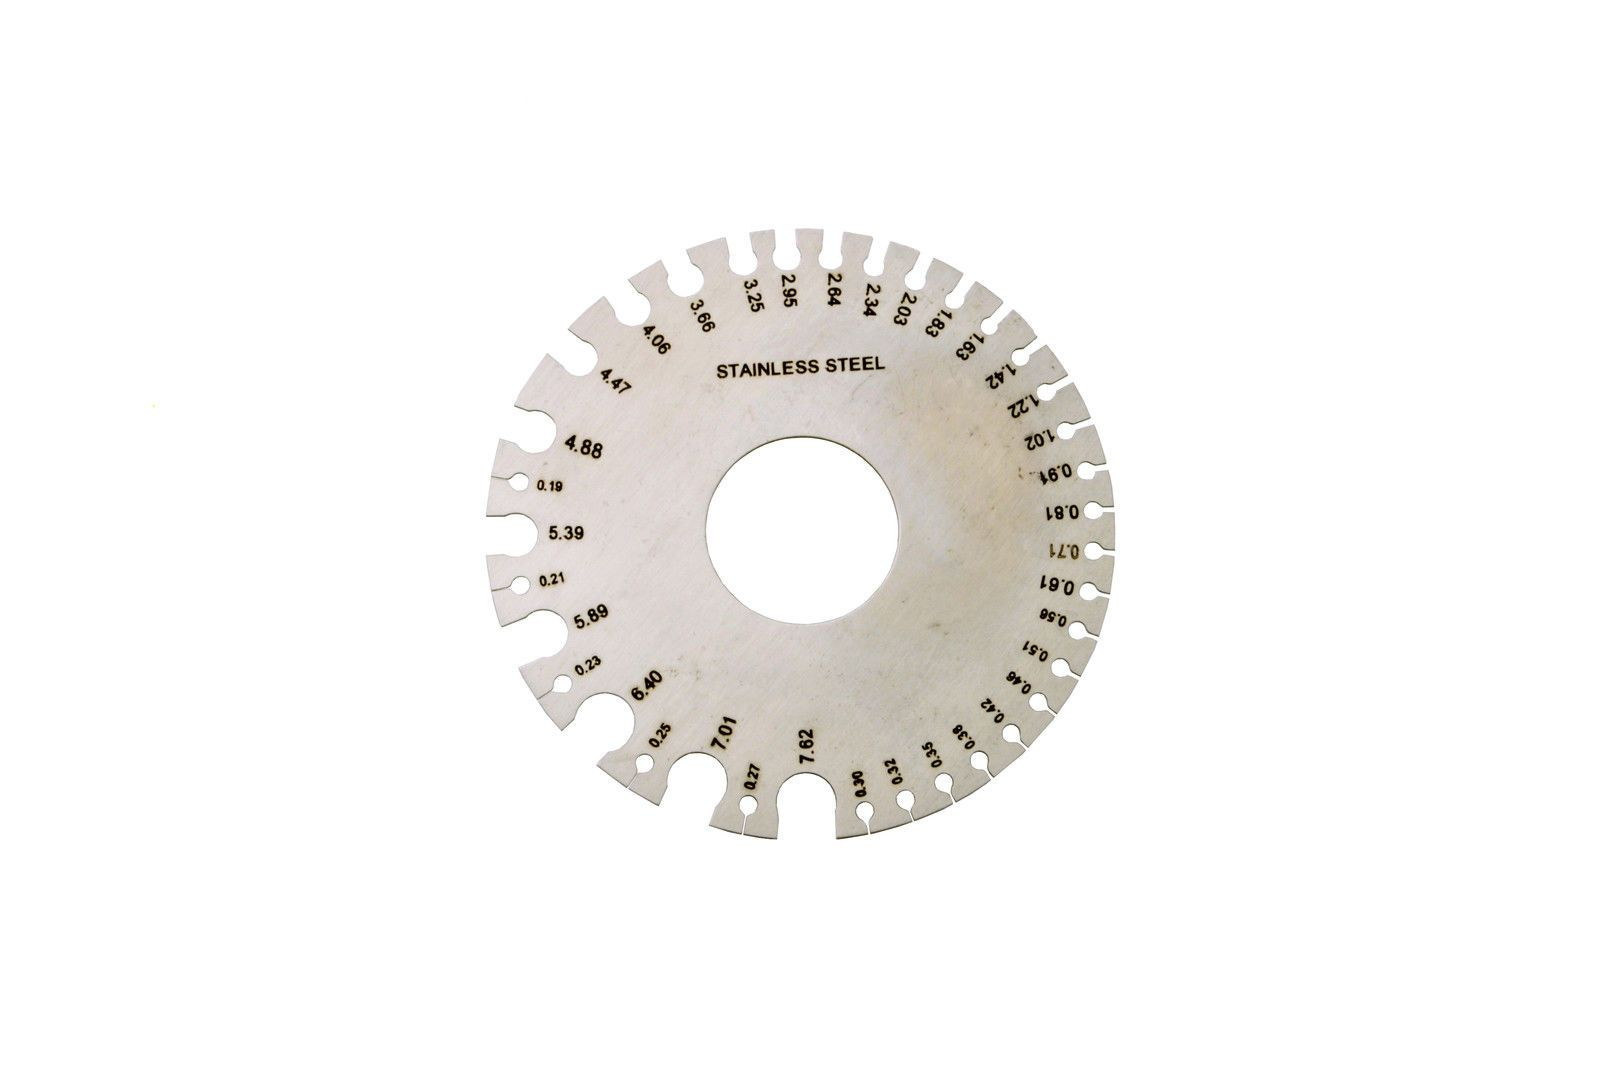 Proops jewellers round wire gauge metric standard measurements 0 proops jewellers round wire gauge metric standard measurements 0 36 m0424 keyboard keysfo Choice Image